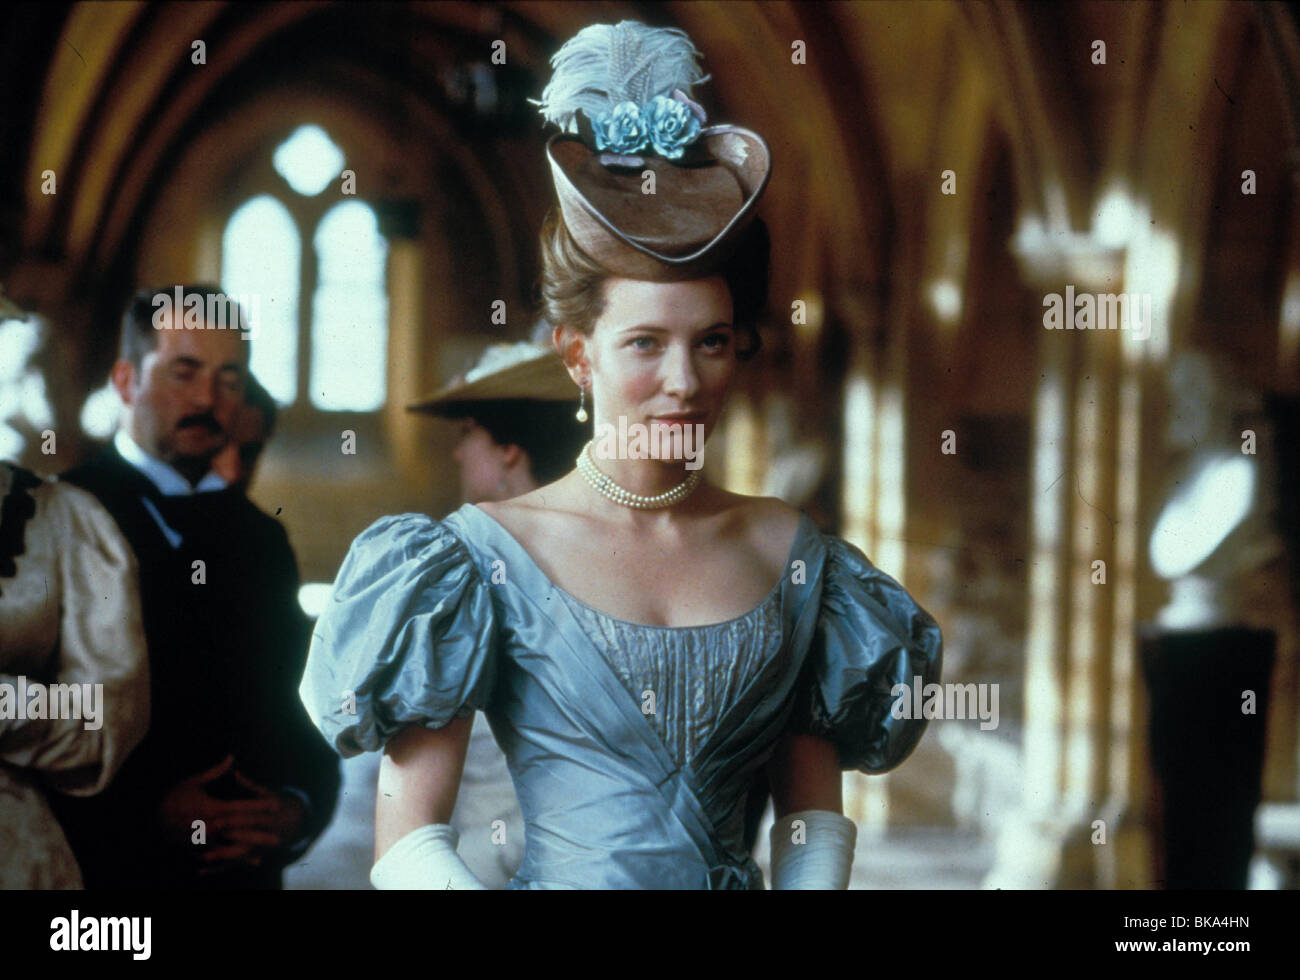 AN IDEAL HUSBAND (1999) CATE BLANCHETT AIHD 032 - Stock Image